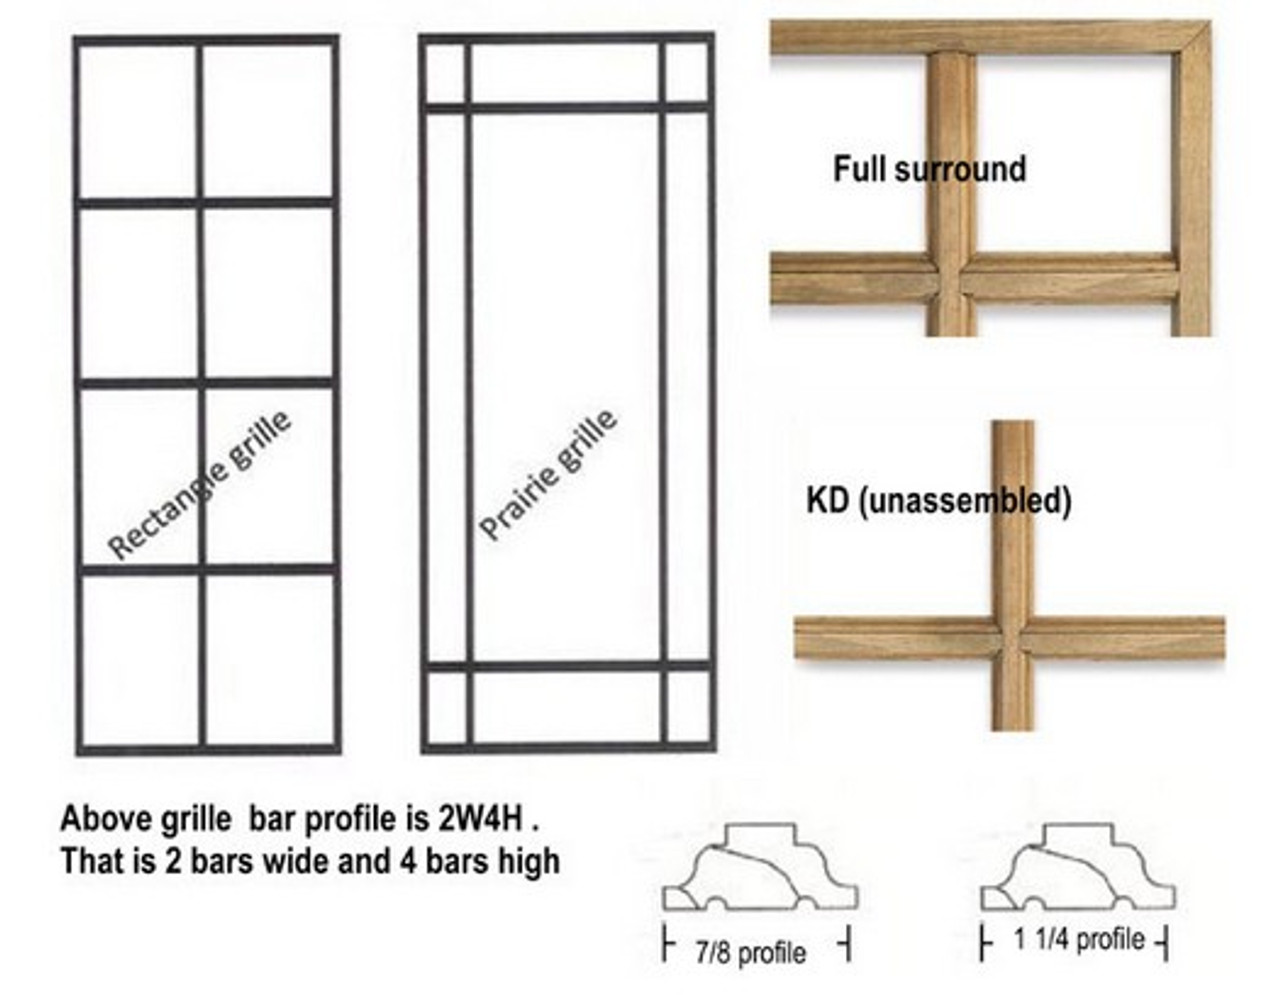 Full surround regtangular wood grilles for Semco awning windows